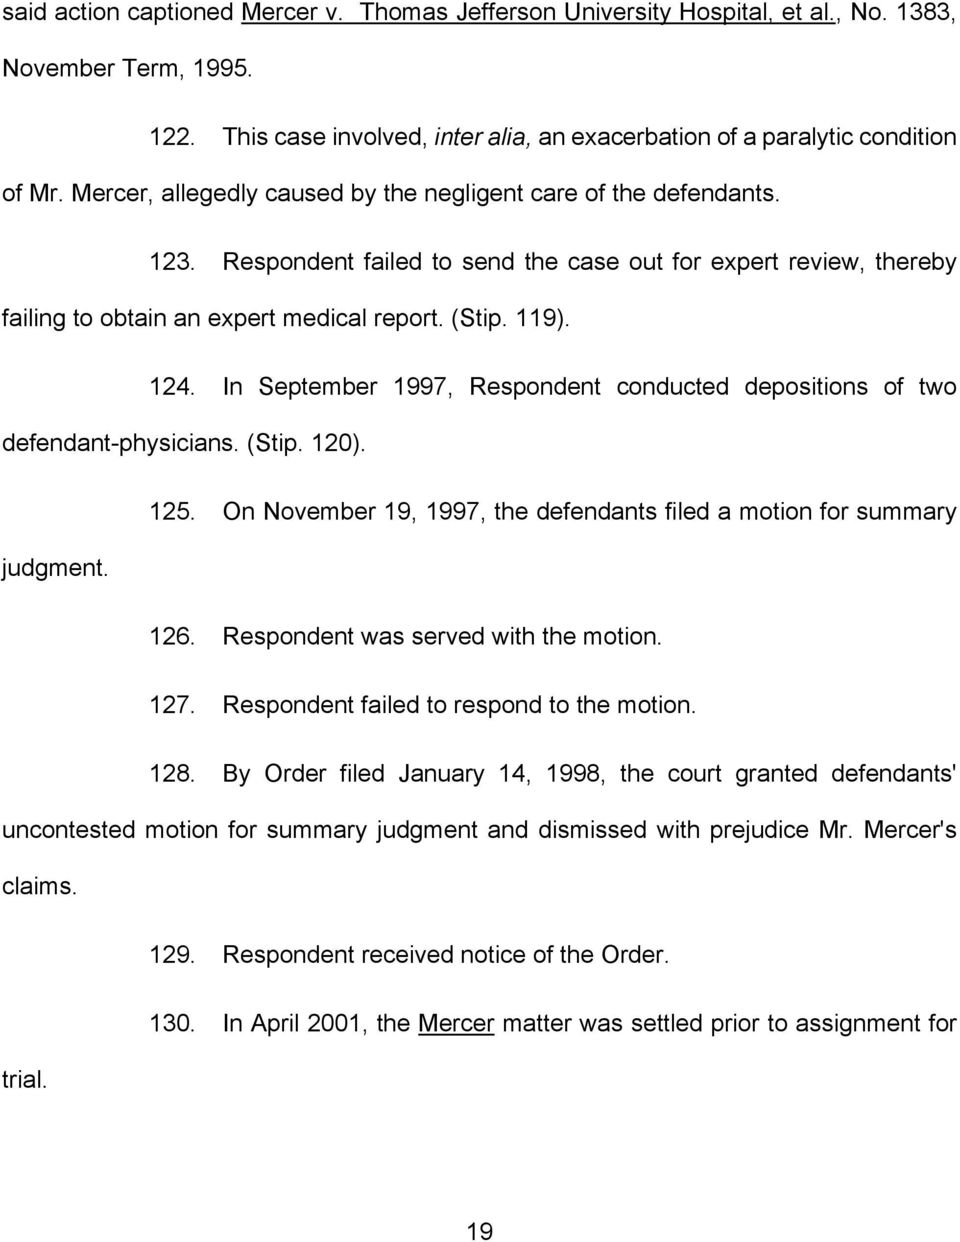 In September 1997, Respondent conducted depositions of two defendant-physicians. (Stip. 120). judgment. 125. On November 19, 1997, the defendants filed a motion for summary 126.